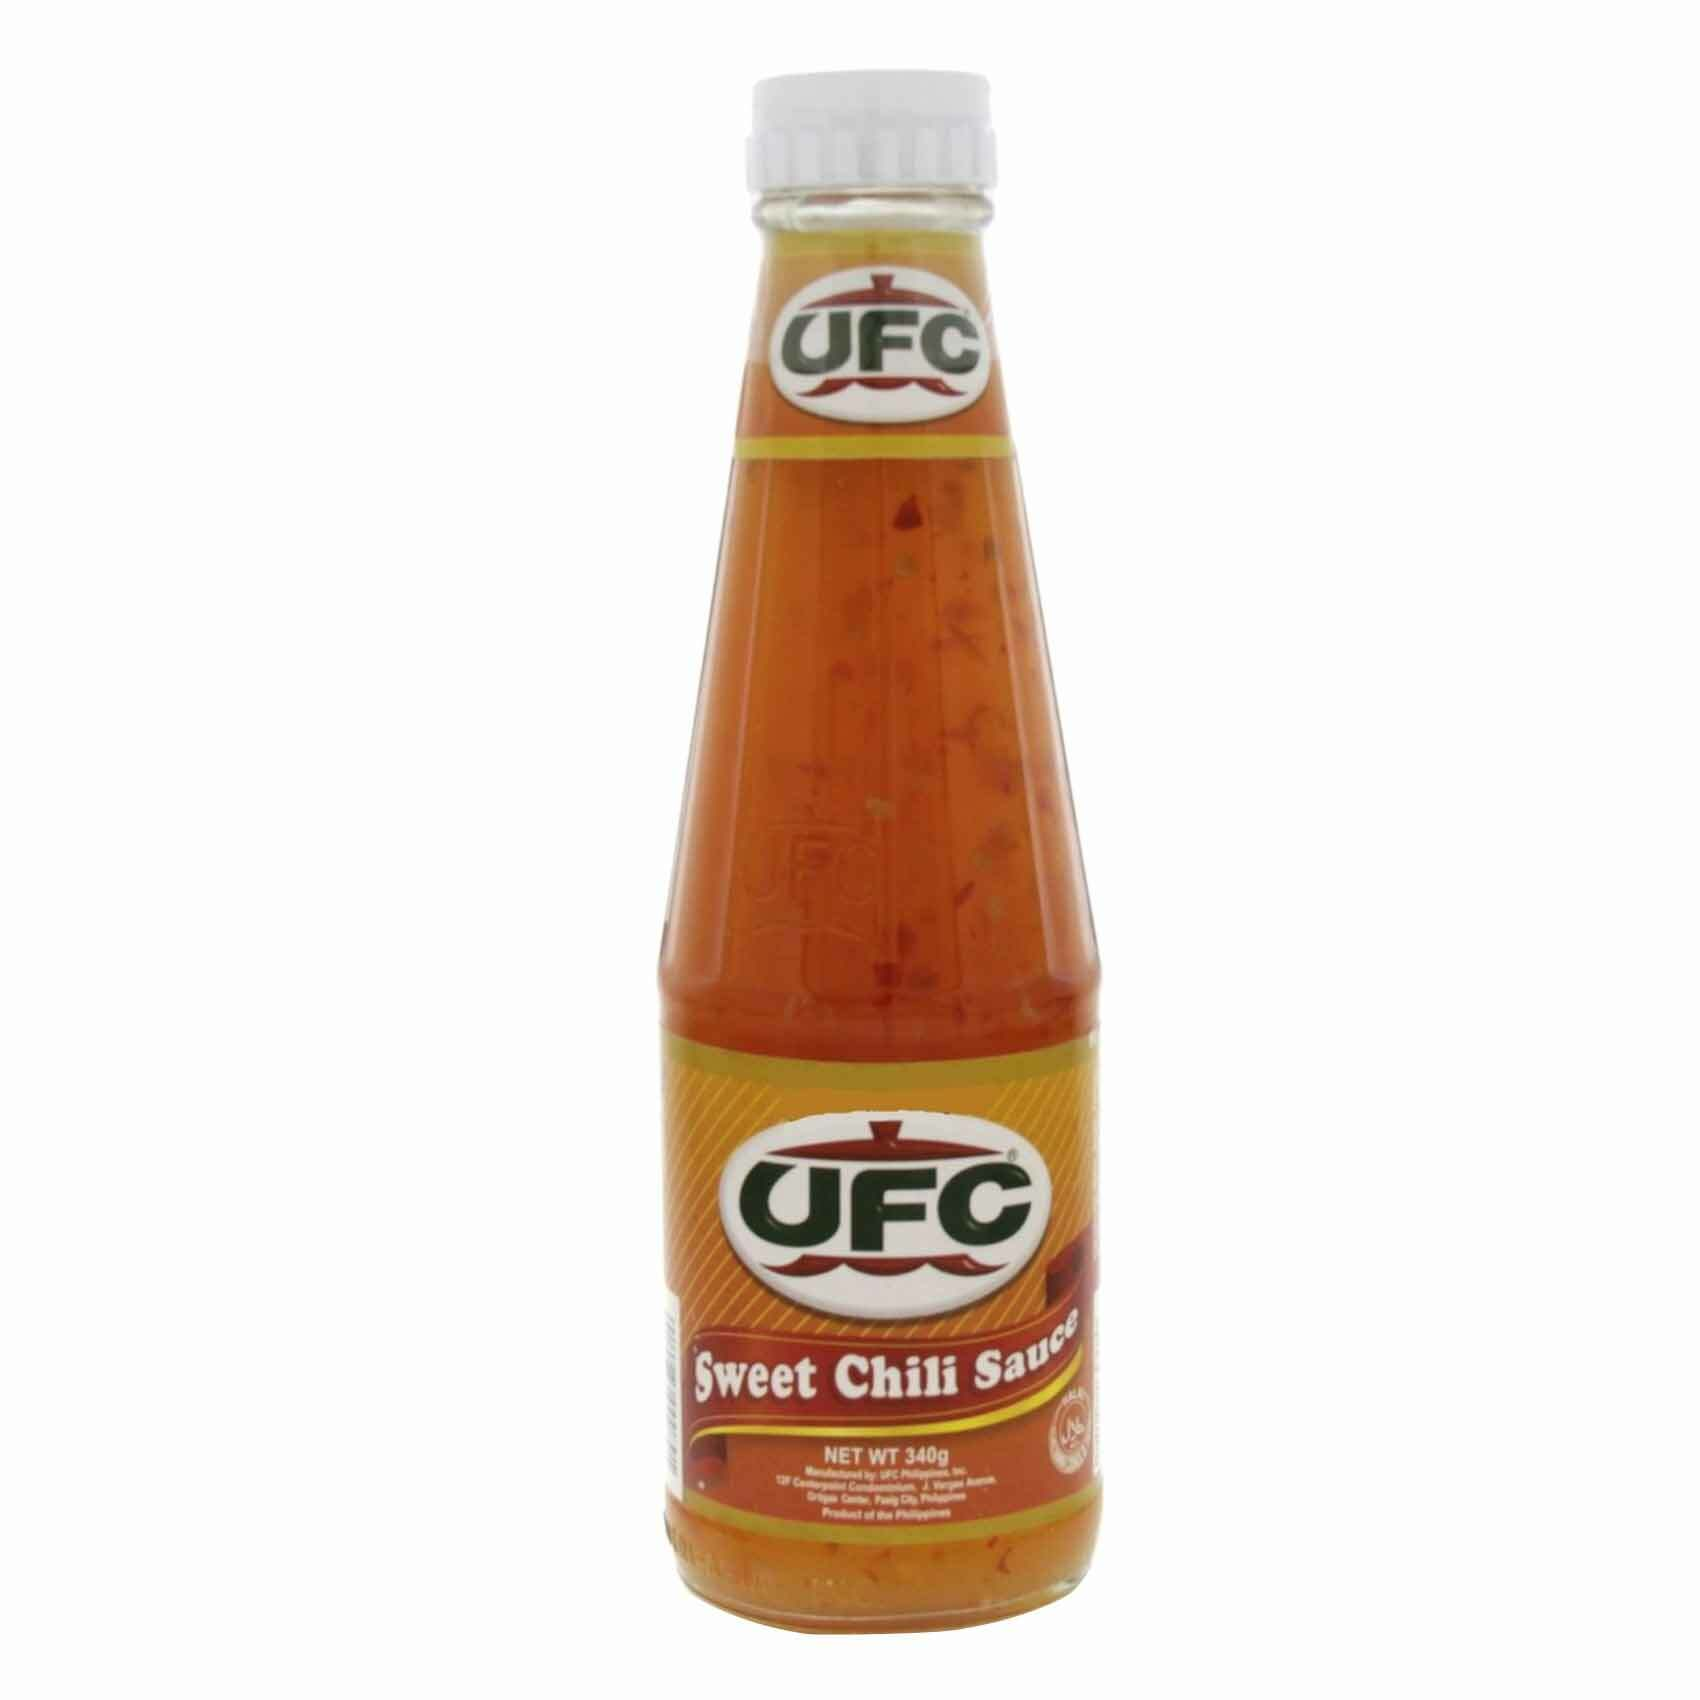 Buy Ufc Sweet Chili Sauce 340g Online Shop Food Cupboard On Carrefour Uae